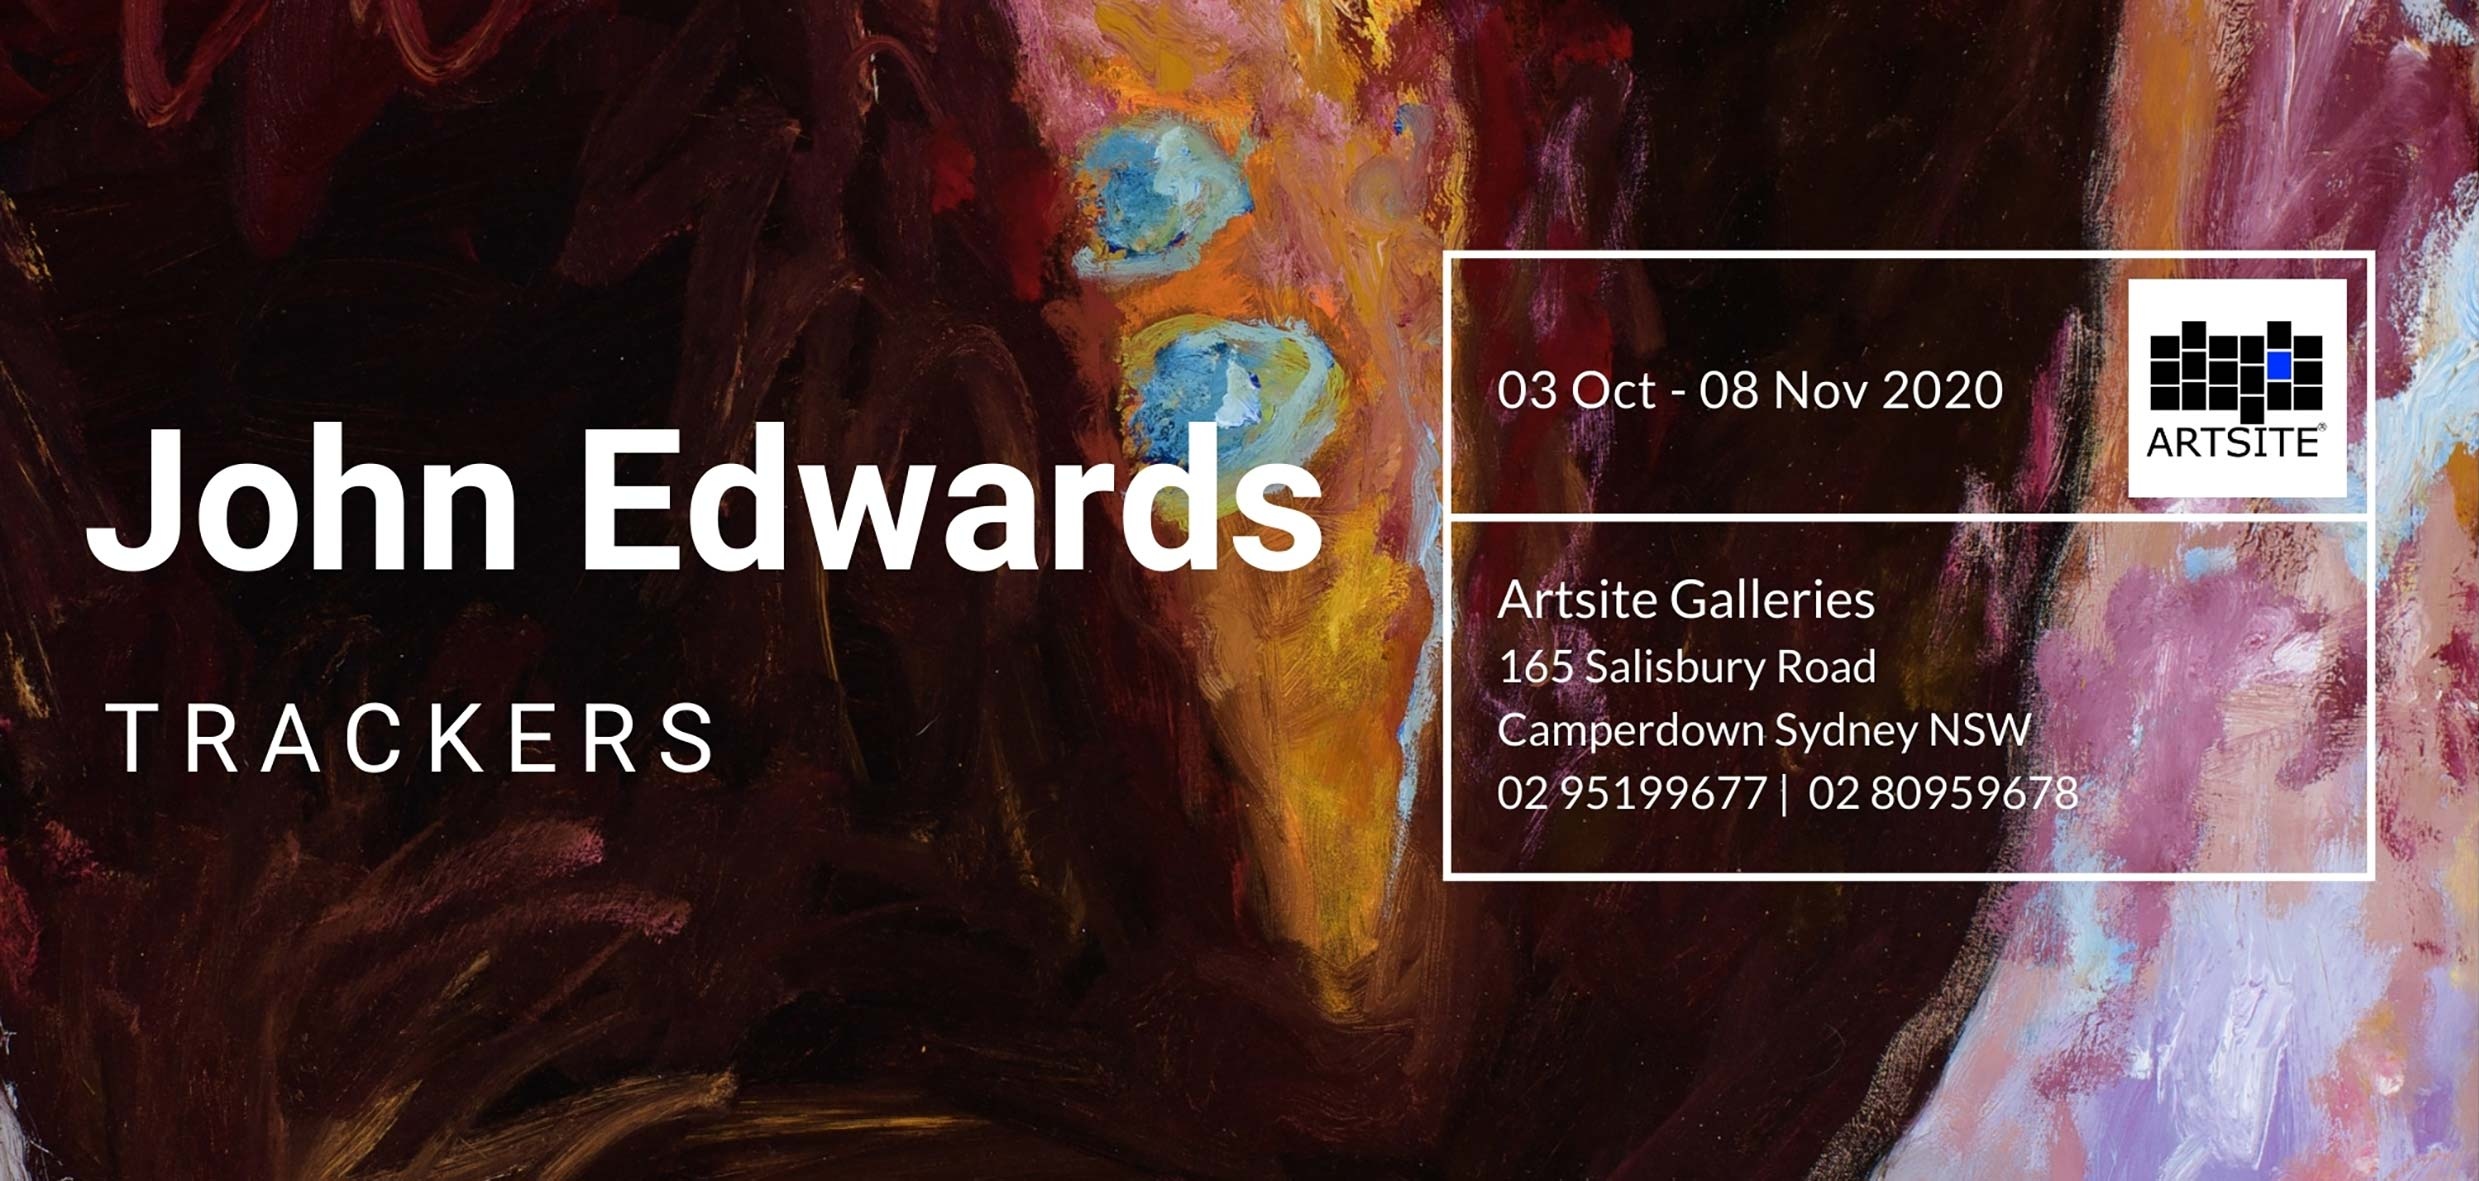 Artsite Galleries Exhibition | John Edwards: Trackers.  Open Saturday and Sundays 11am - 5pm and By Appointment: Monday - Friday | 03 October - 08 November 2020.